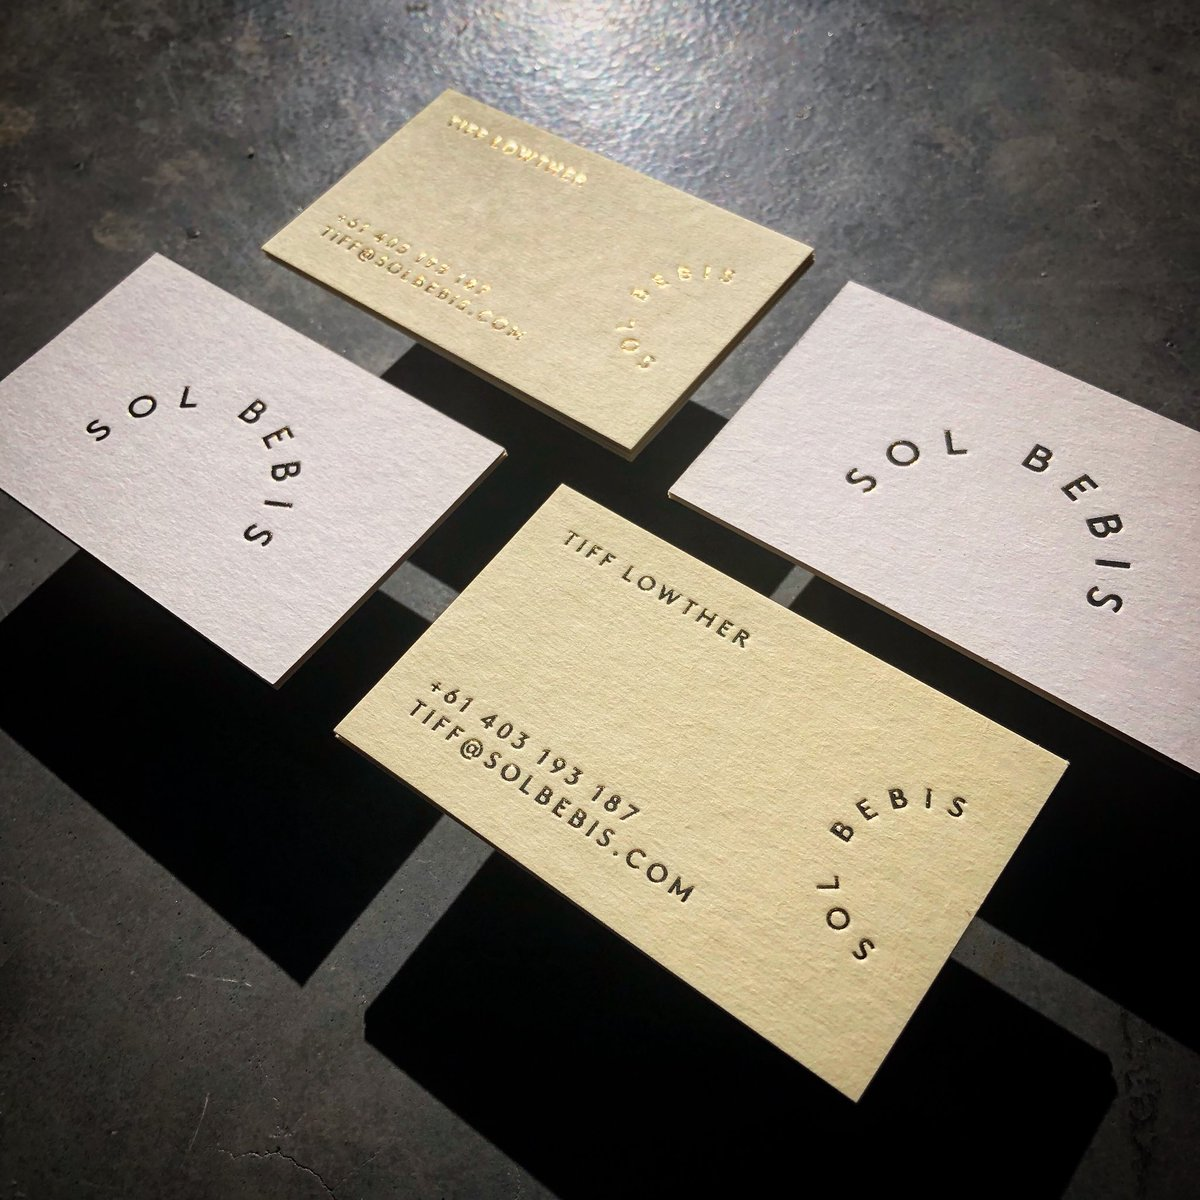 Taylord press on twitter sol bebis business cards spot colour spot colour offset printed gold foiled on beer matt board 390gsm card designed by emilygillis businesscards solbebis offsetprinting offset colourmoves